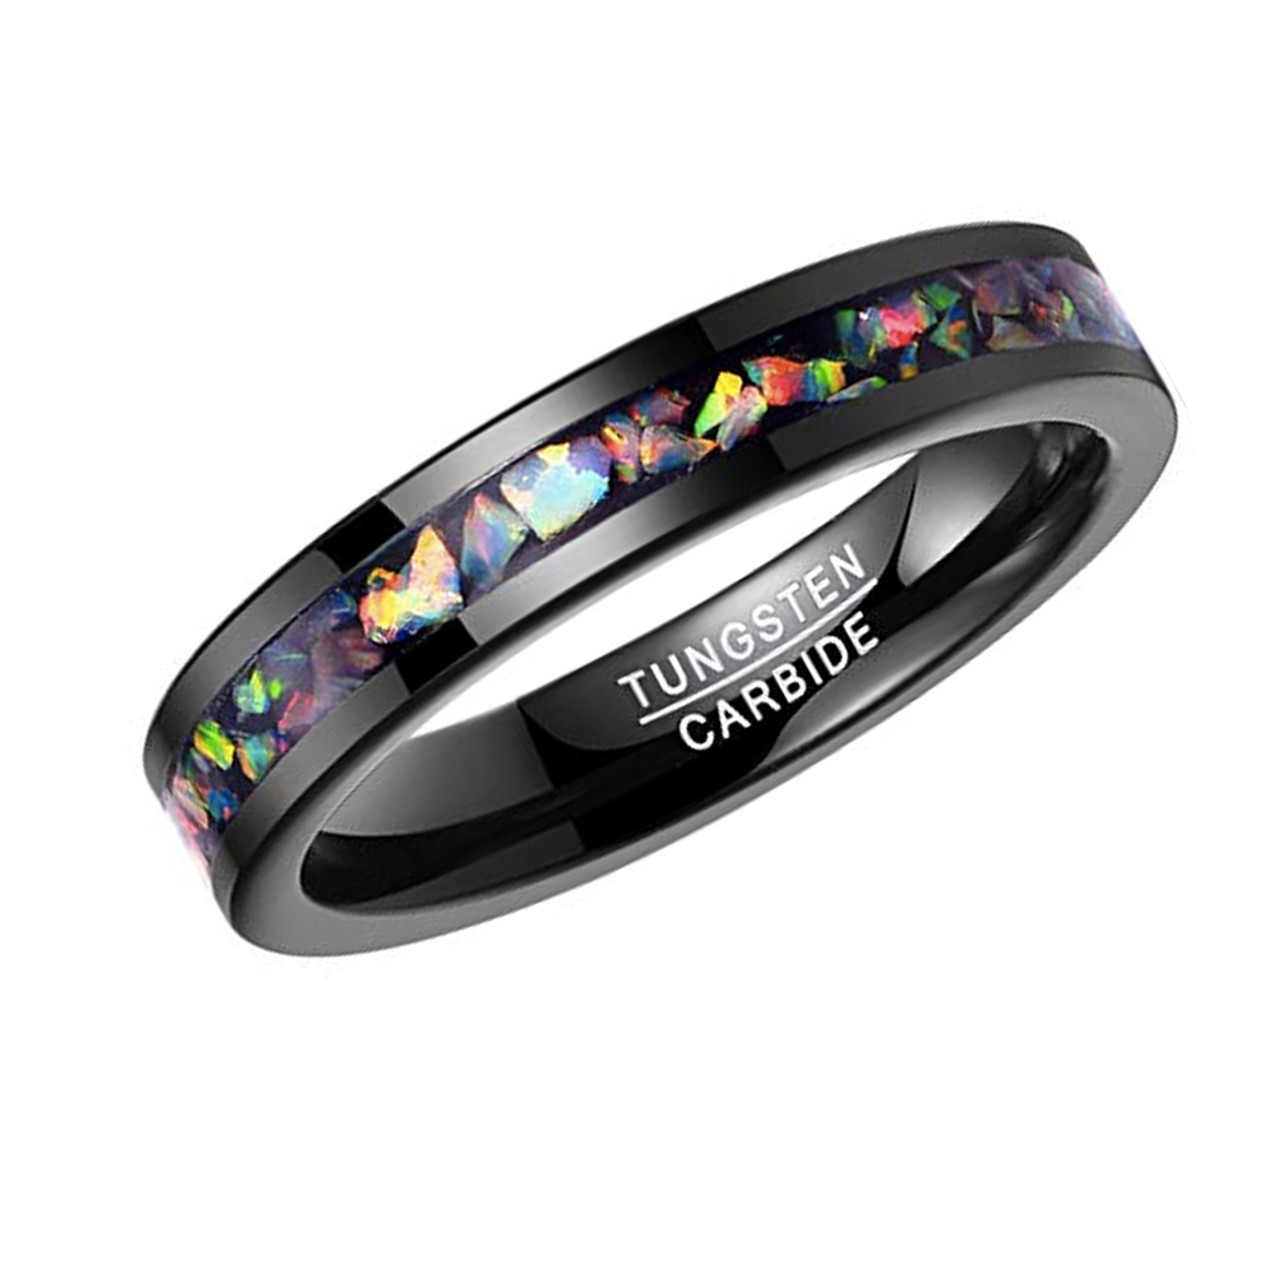 5mm Unisex Or Womens Tungsten Carbide Wedding Ring Bands Black Band And Multiple Color Rainbow Opal Inlay With Organic Tones